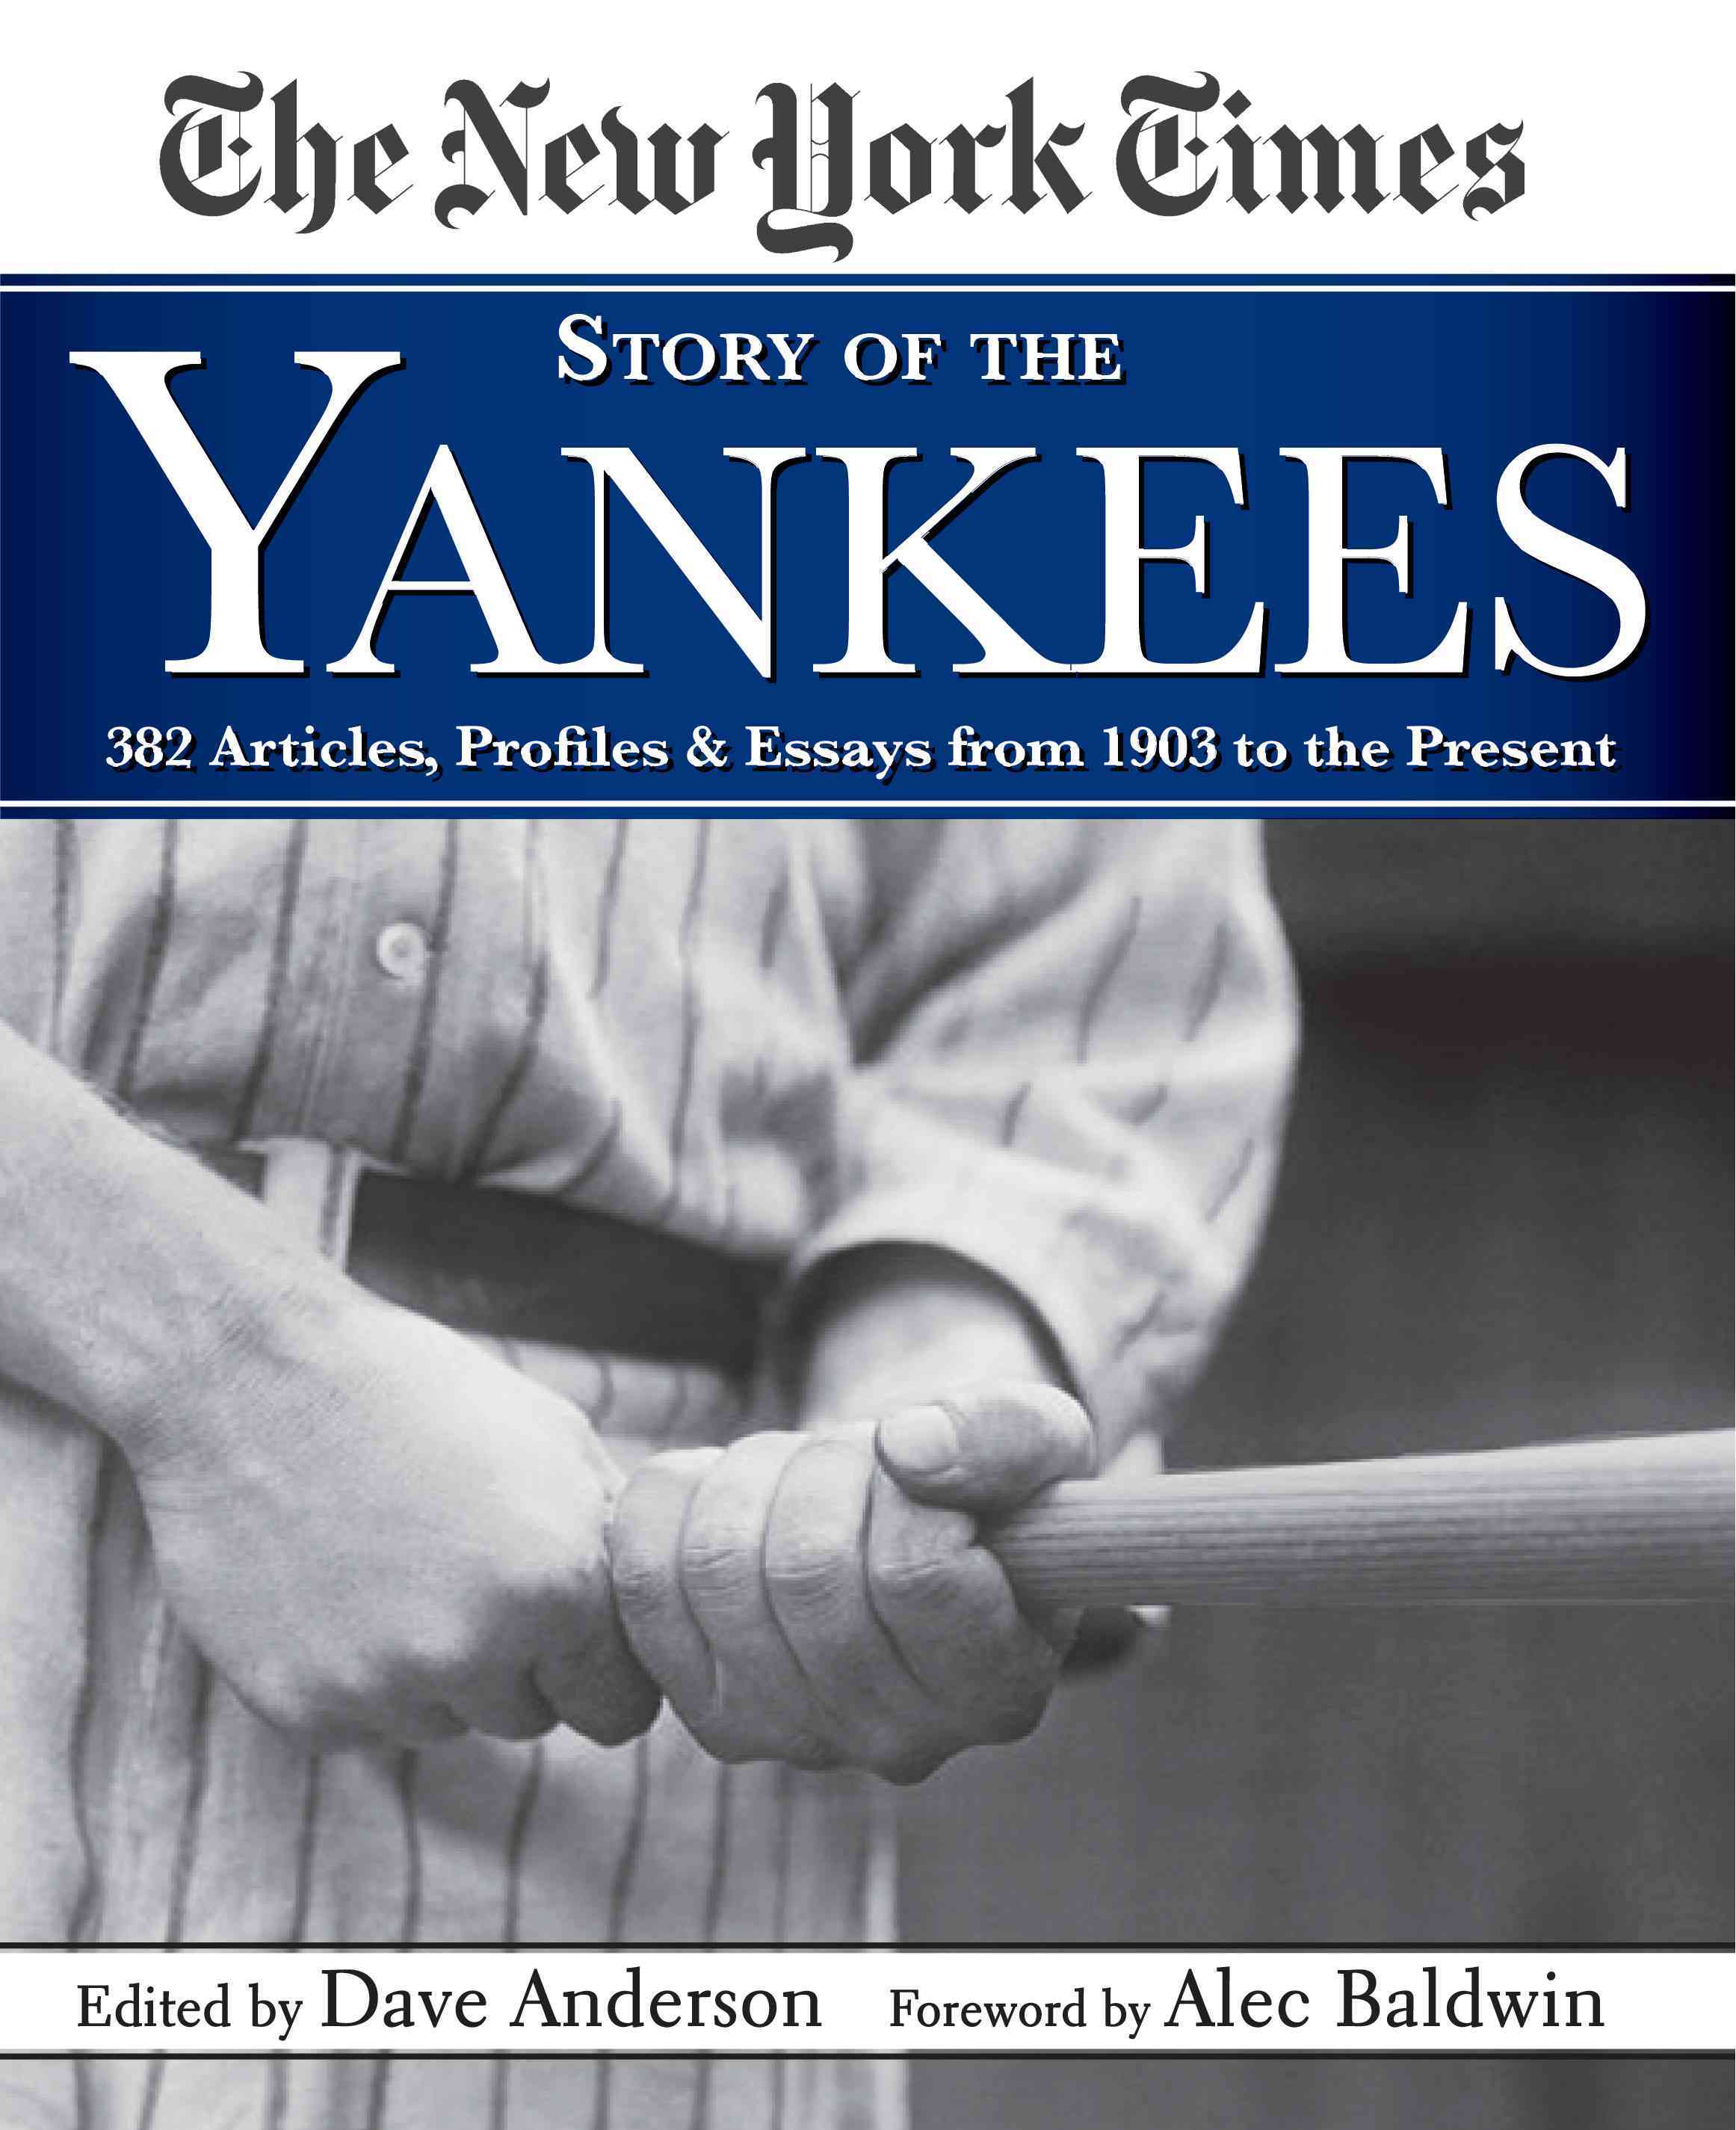 The New York Times Story of the Yankees: 382 Articles, Profiles & Essays from 1903 to Present (Hardcover)